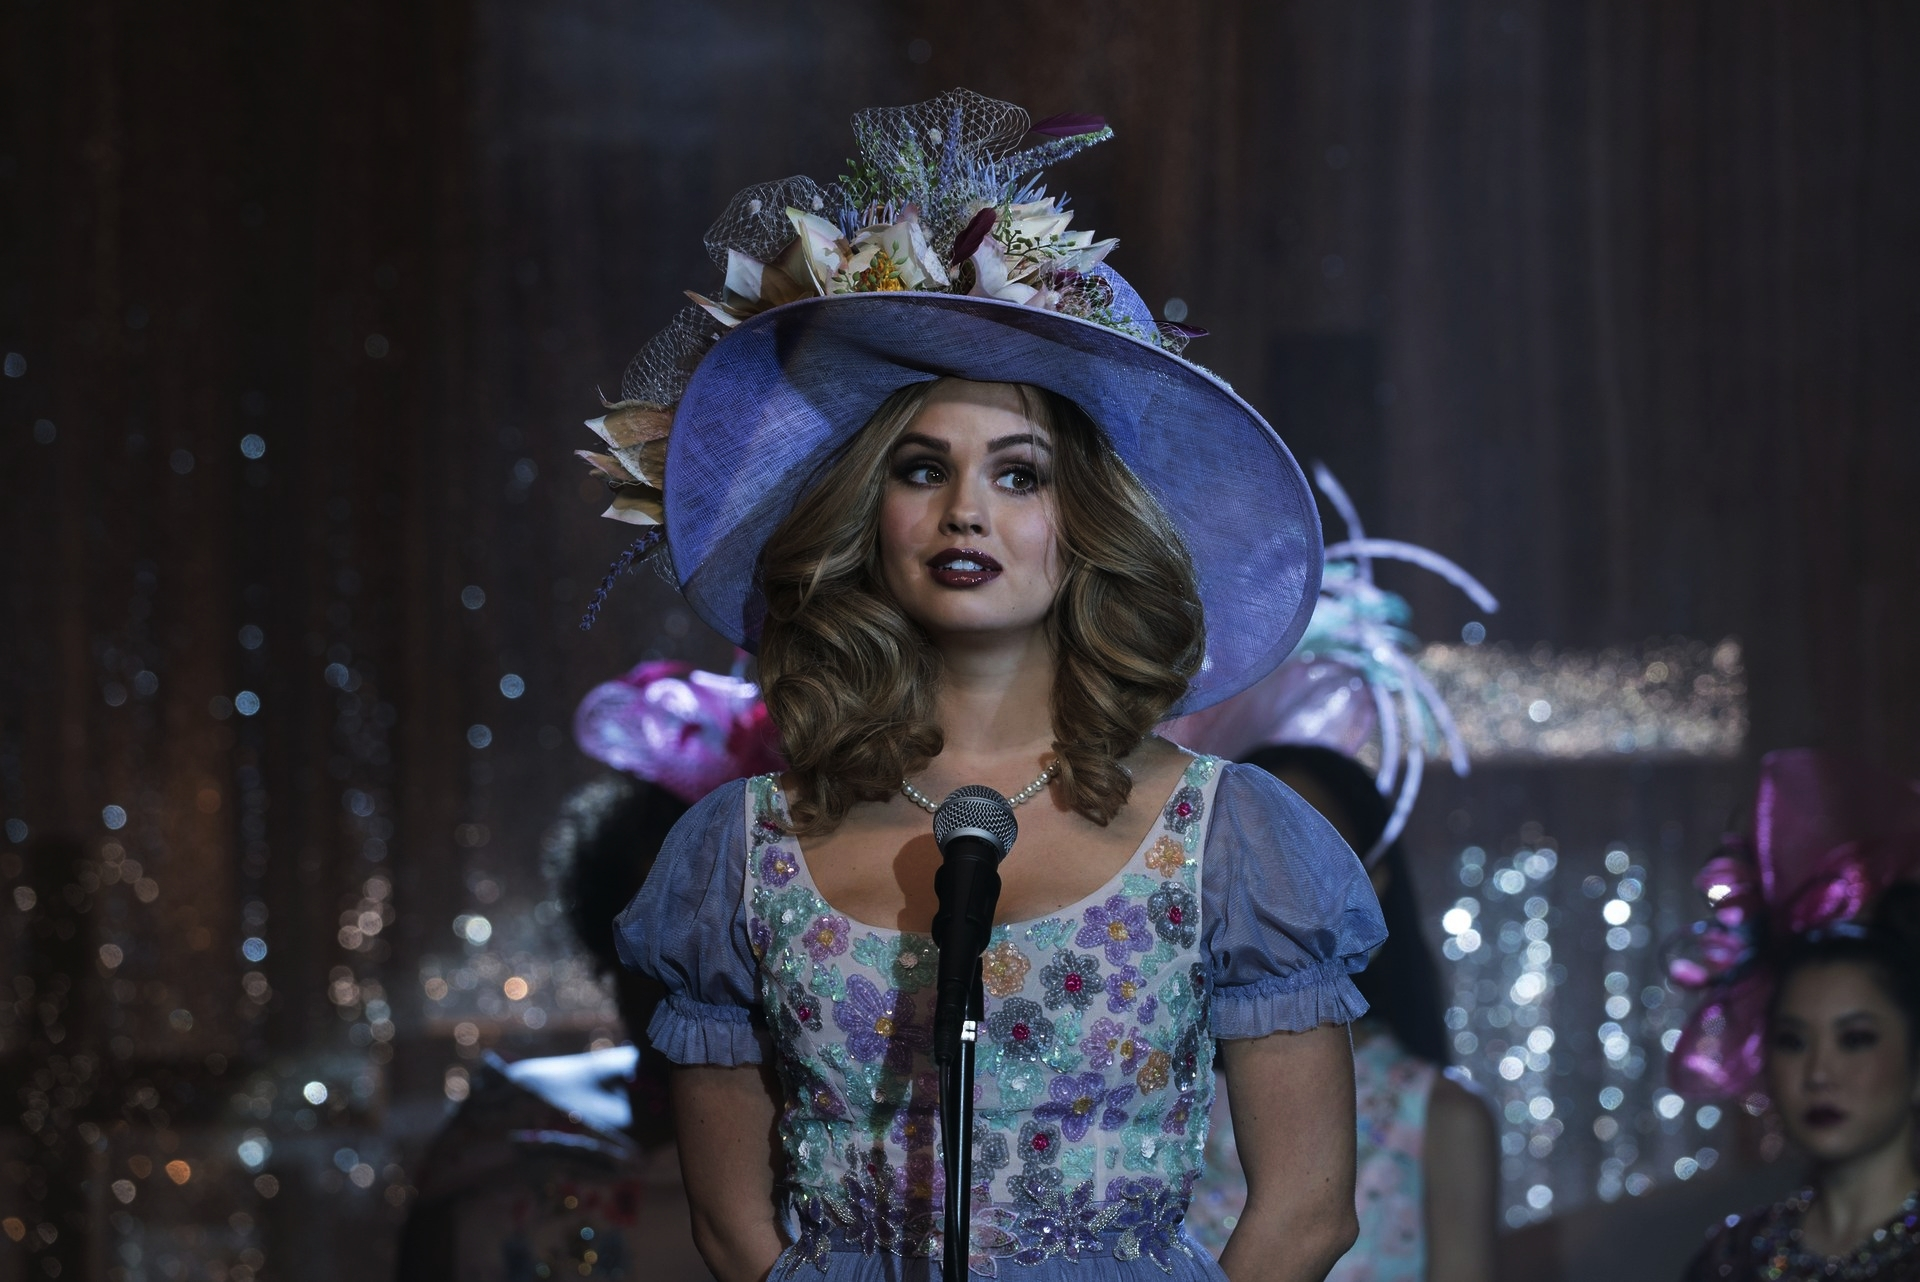 Insatiable Creator Lauren Gussis Wants You to Give Her Controversial Show a Chance - From Vanity Fair